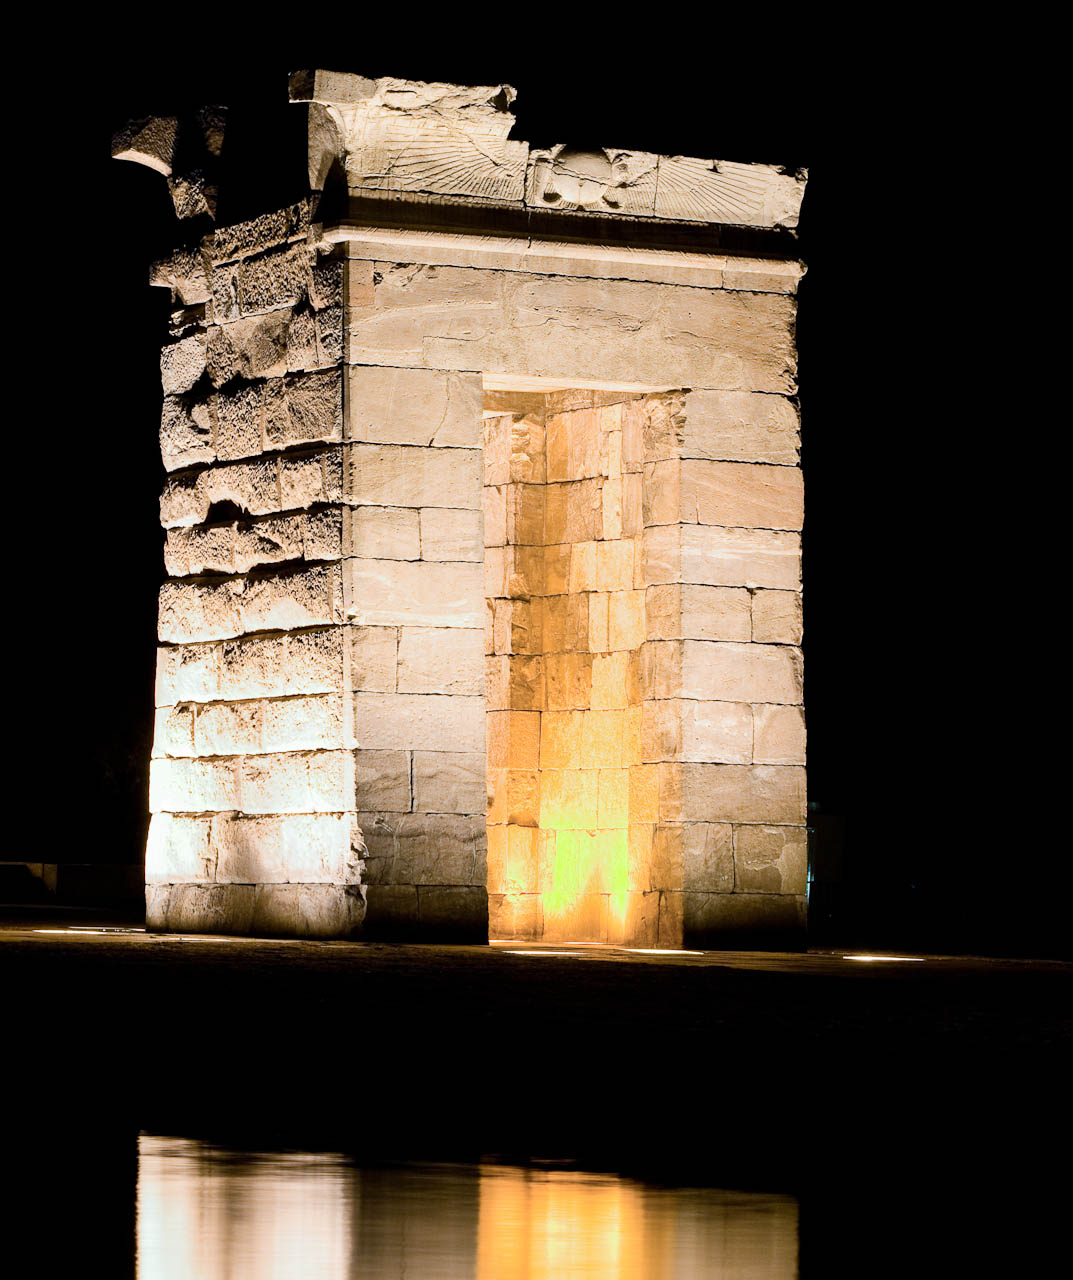 news from the valley of the kings temple of debod at night